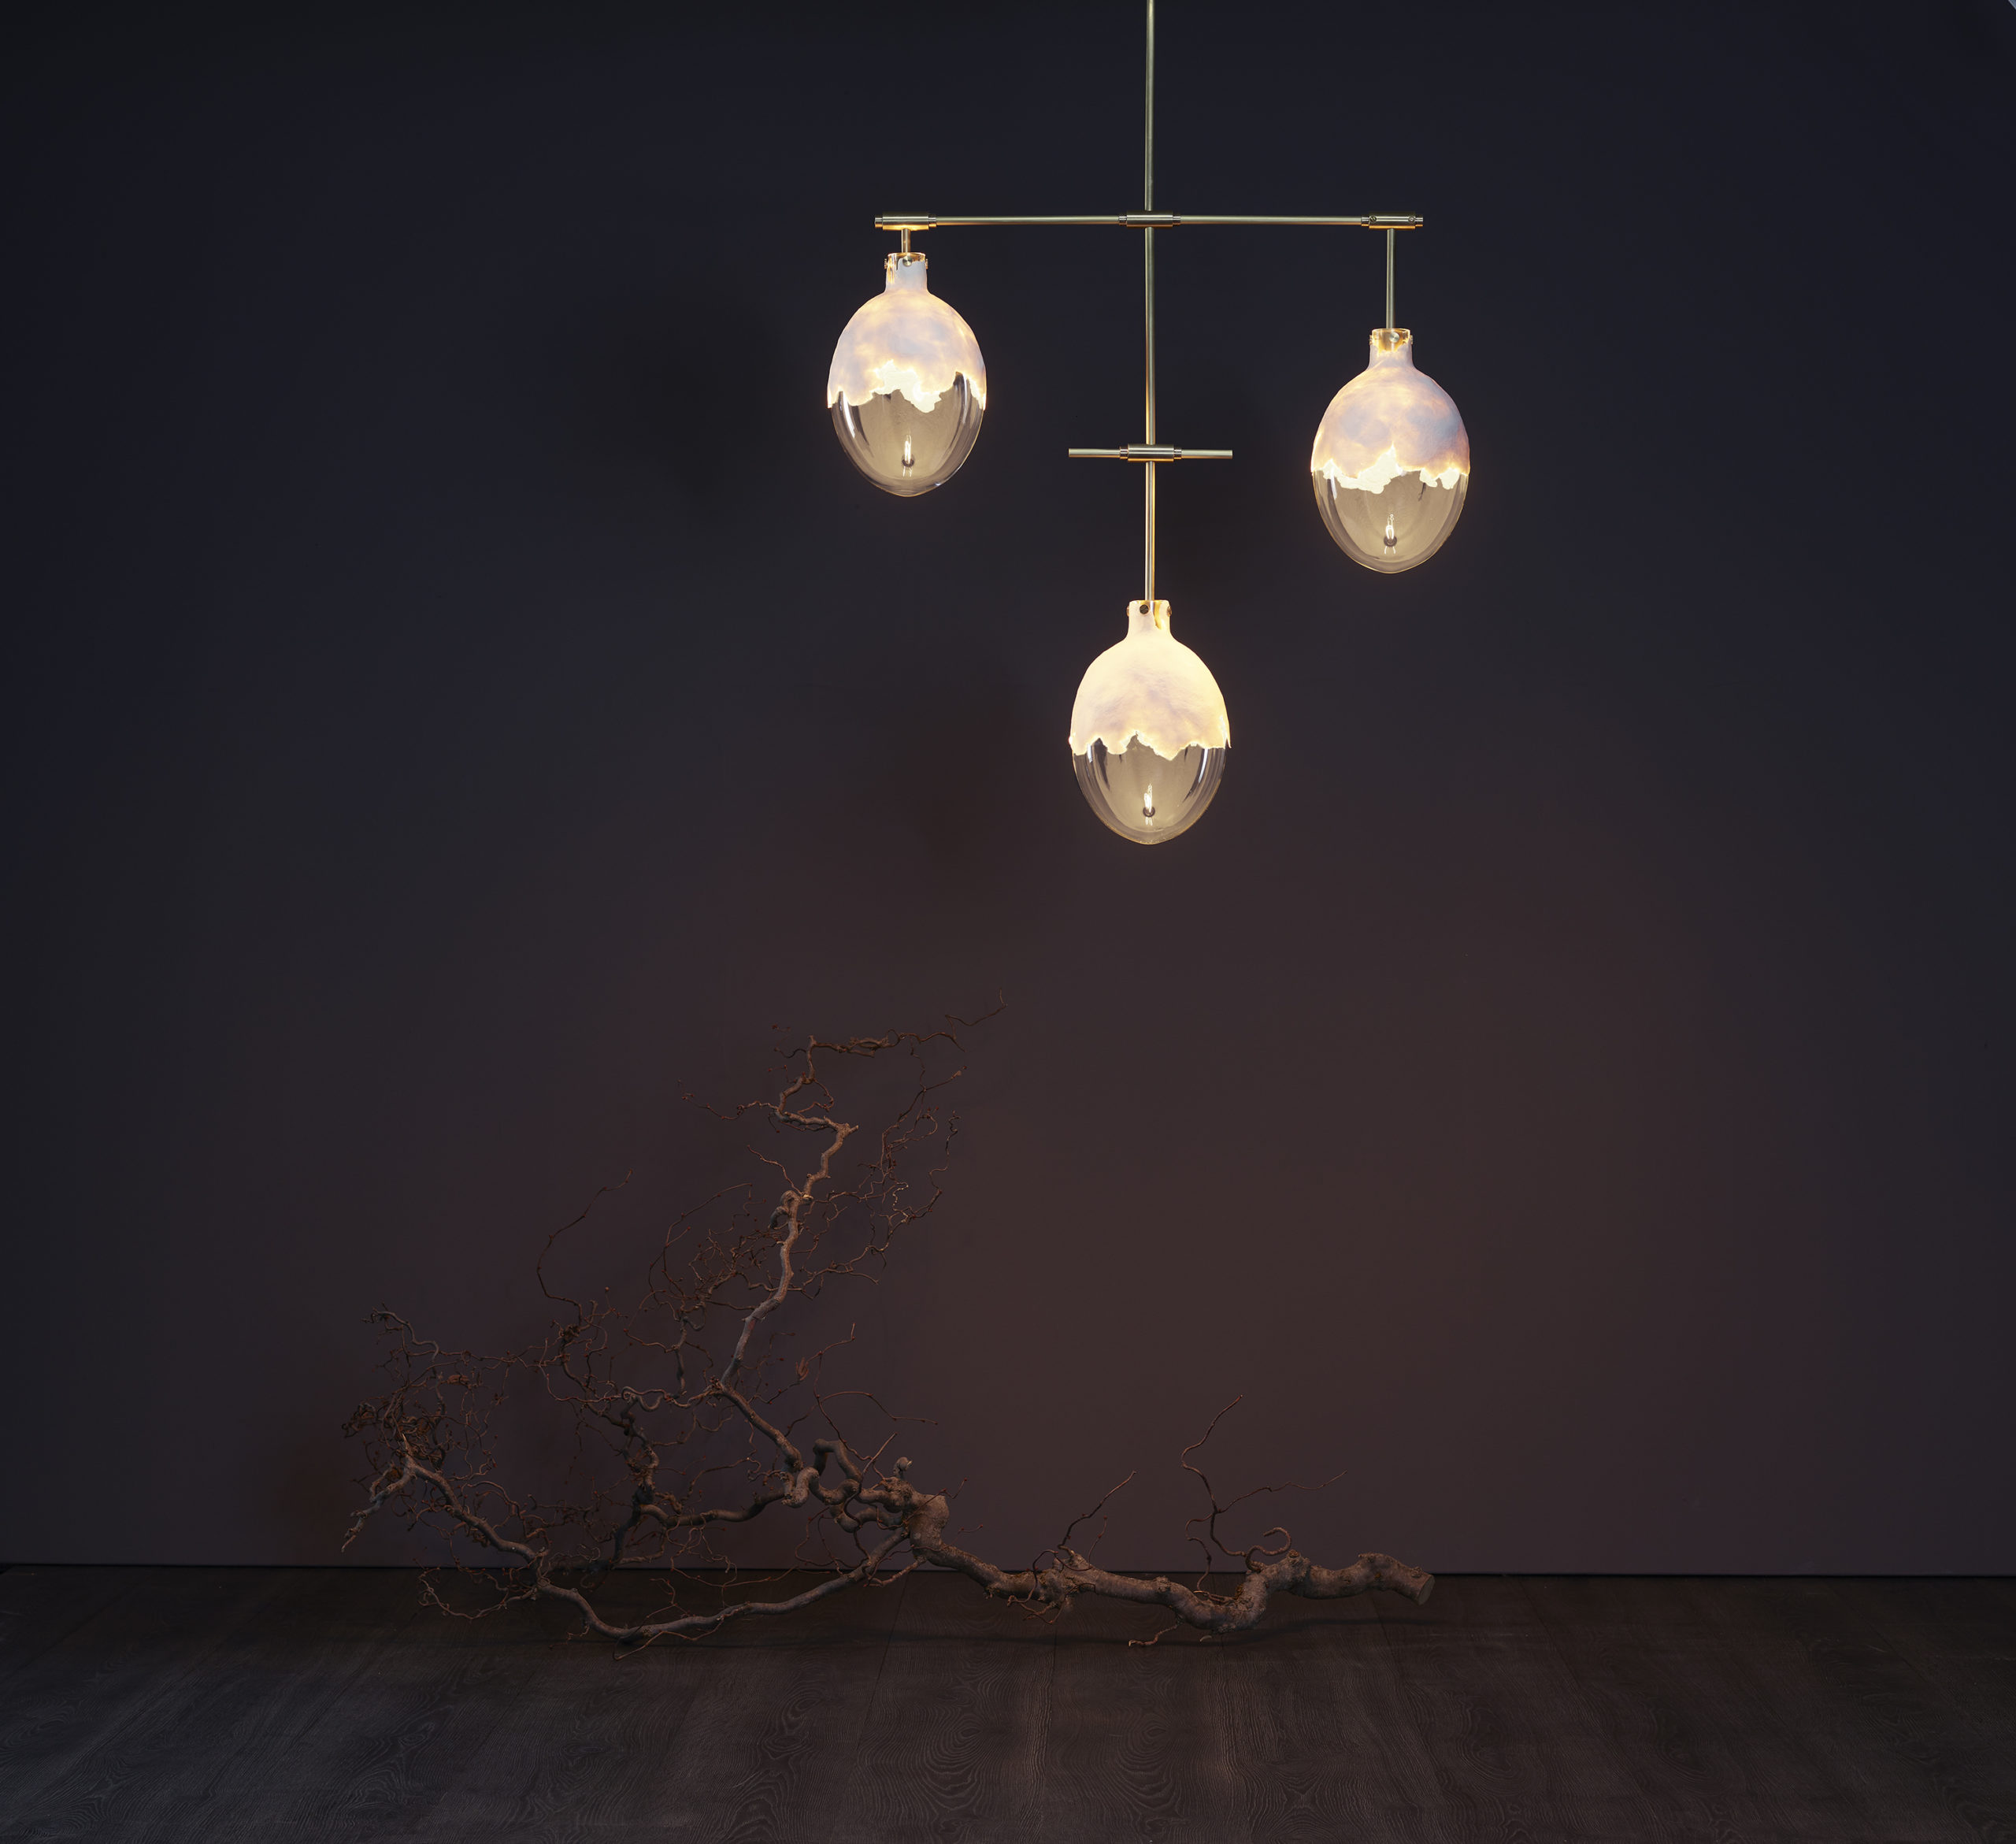 glow-collection-kaia-lighting-sophie-dries